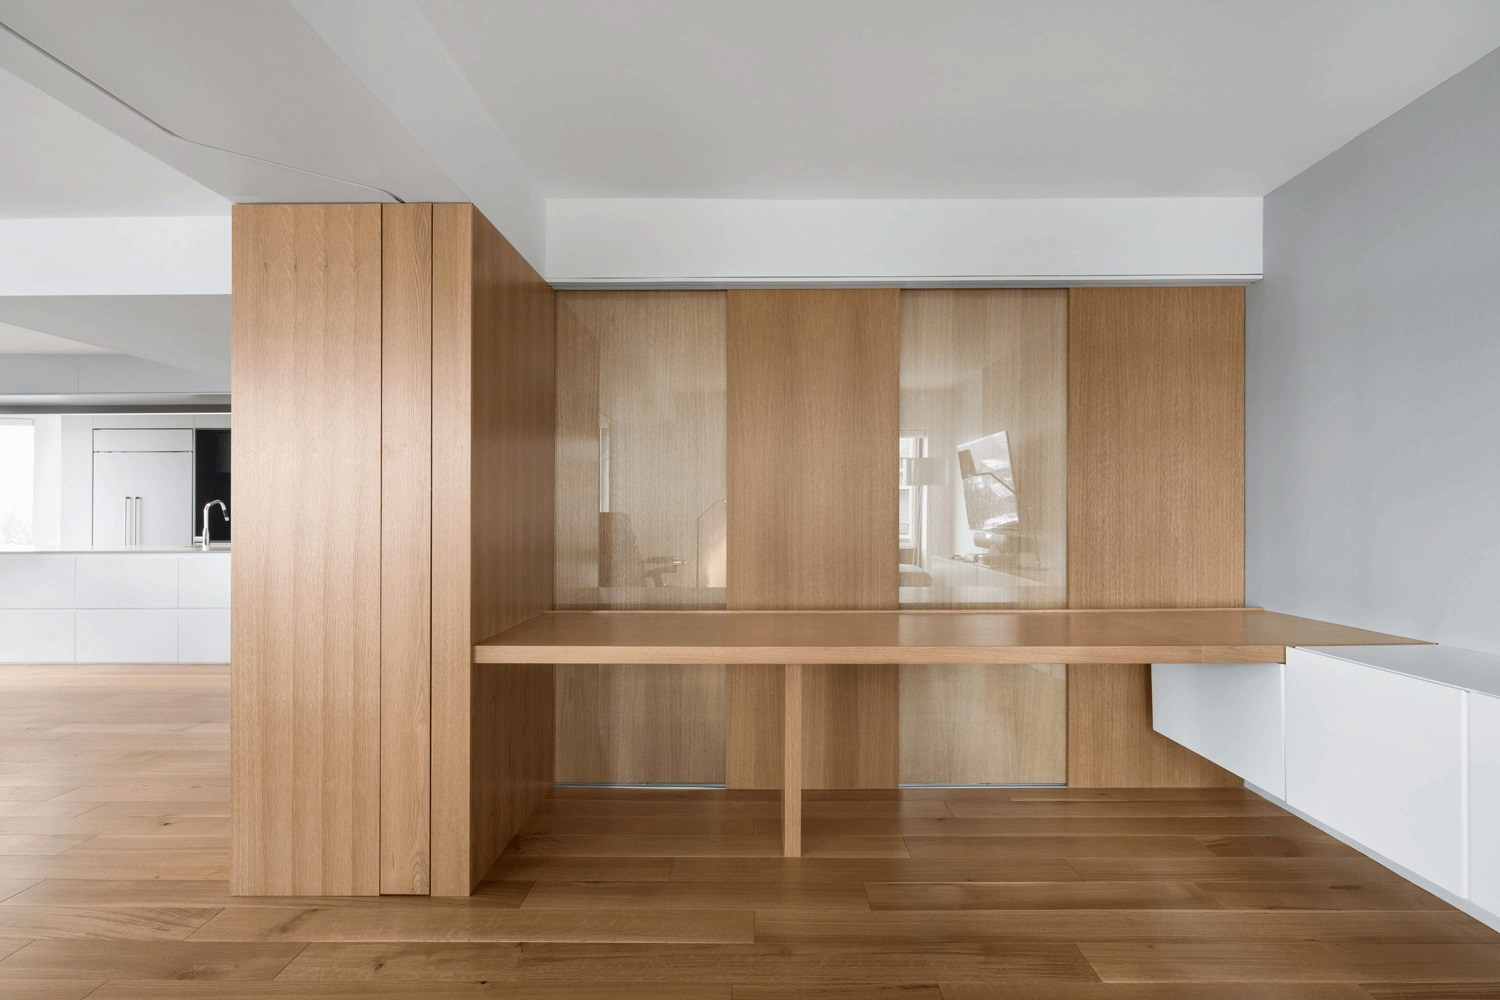 Ville-Marie Apartment by NatureHumaine